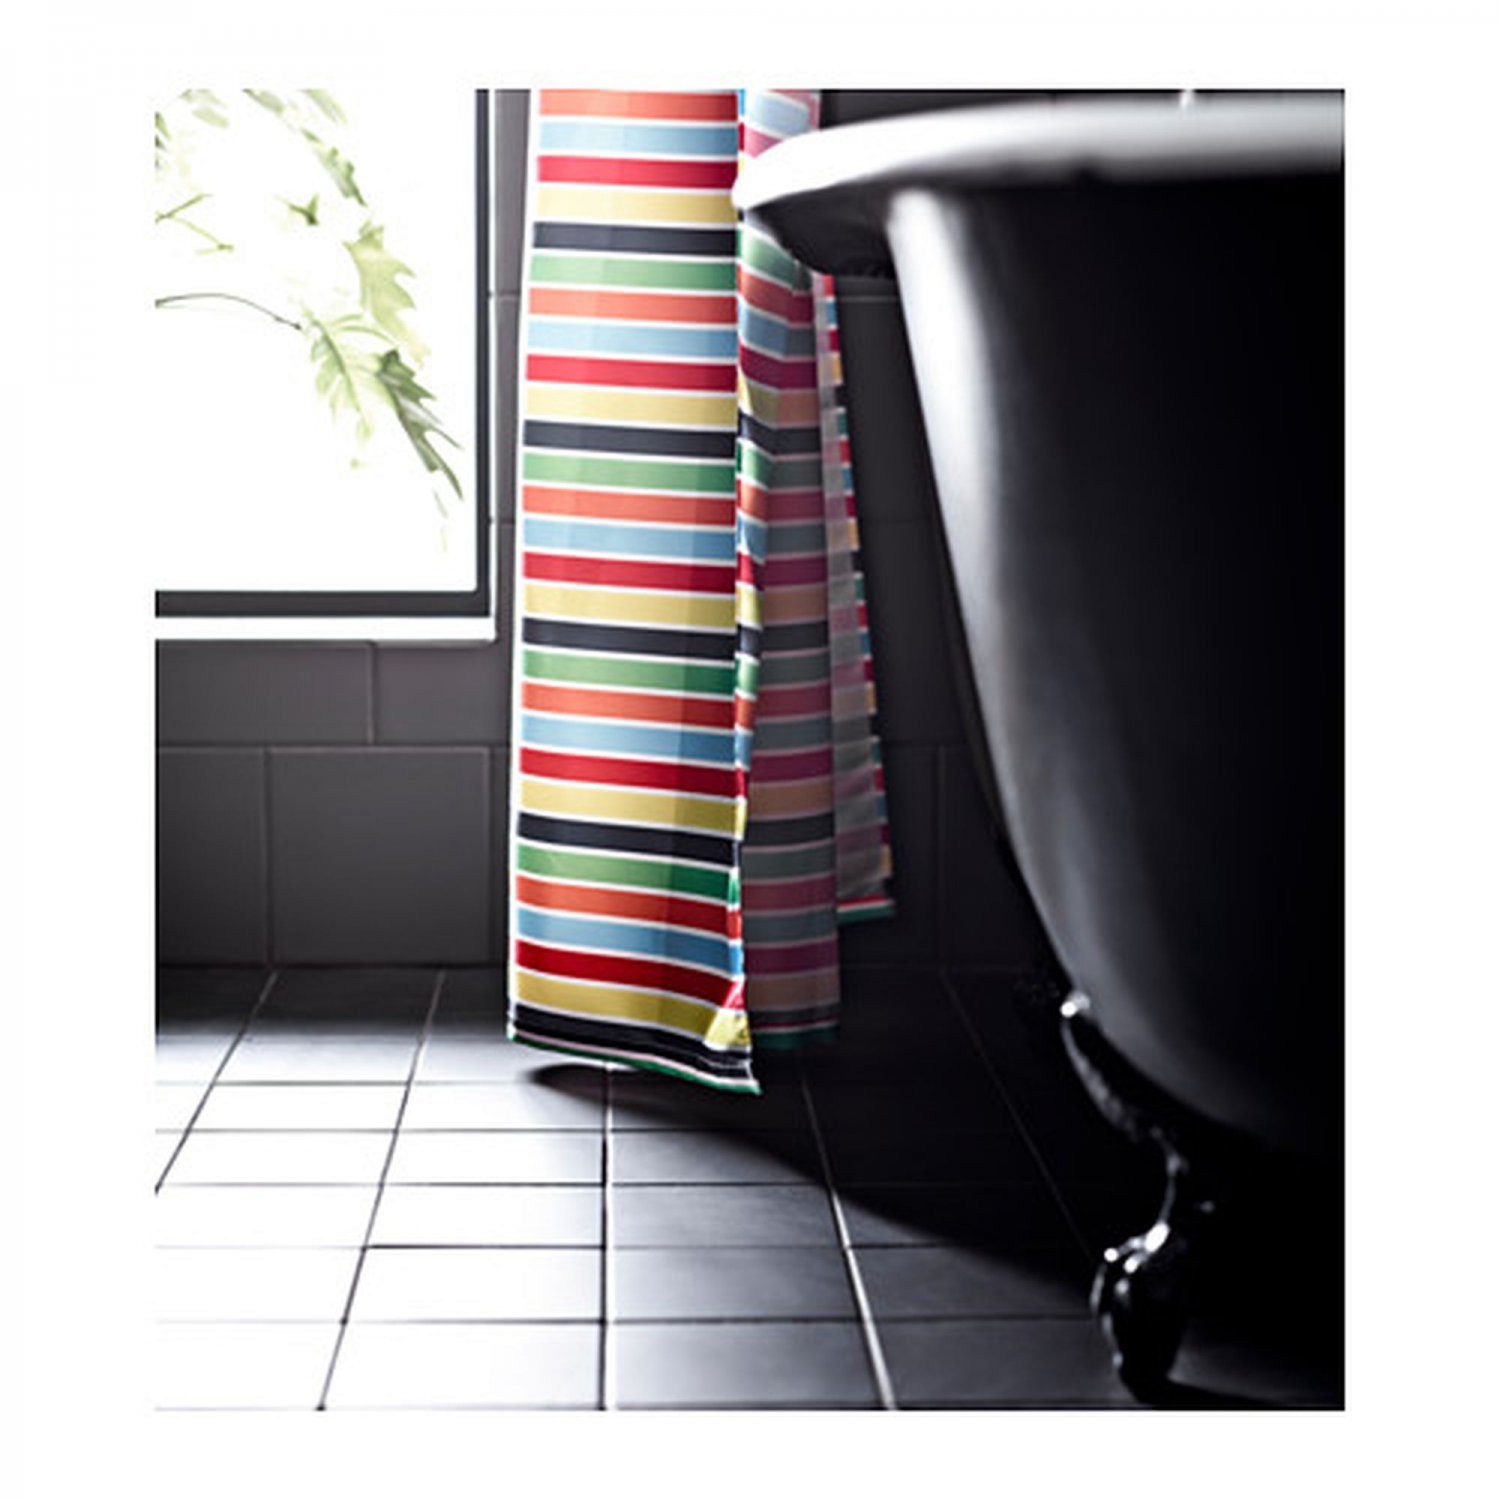 Ikea Einrichtungsplaner Jugendzimmer ~ IKEA BOKVIK Fabric SHOWER CURTAIN Stripes Multicolor Cabana Horizontal